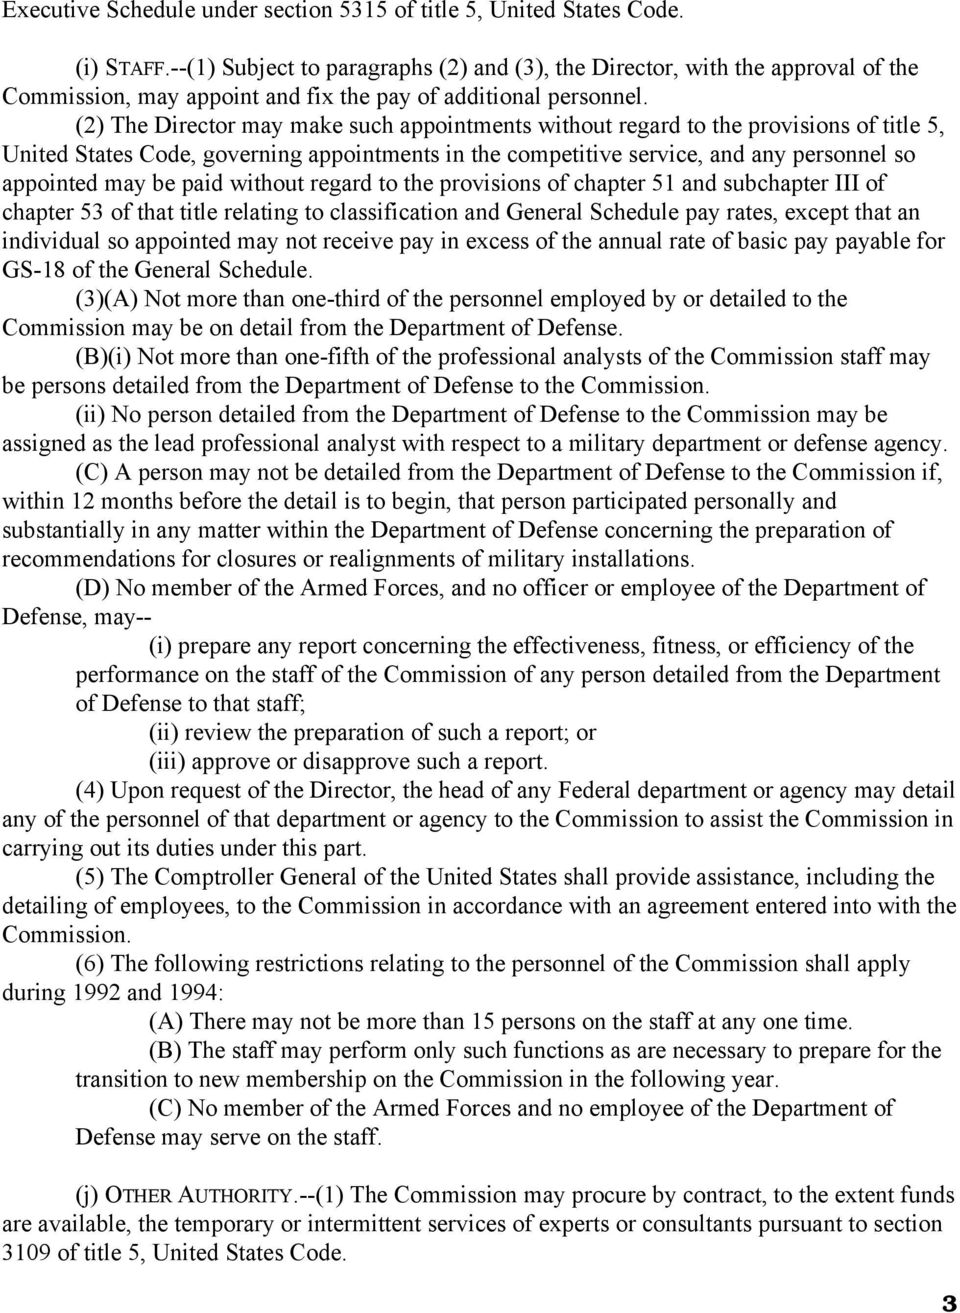 (2) The Director may make such appointments without regard to the provisions of title 5, United States Code, governing appointments in the competitive service, and any personnel so appointed may be